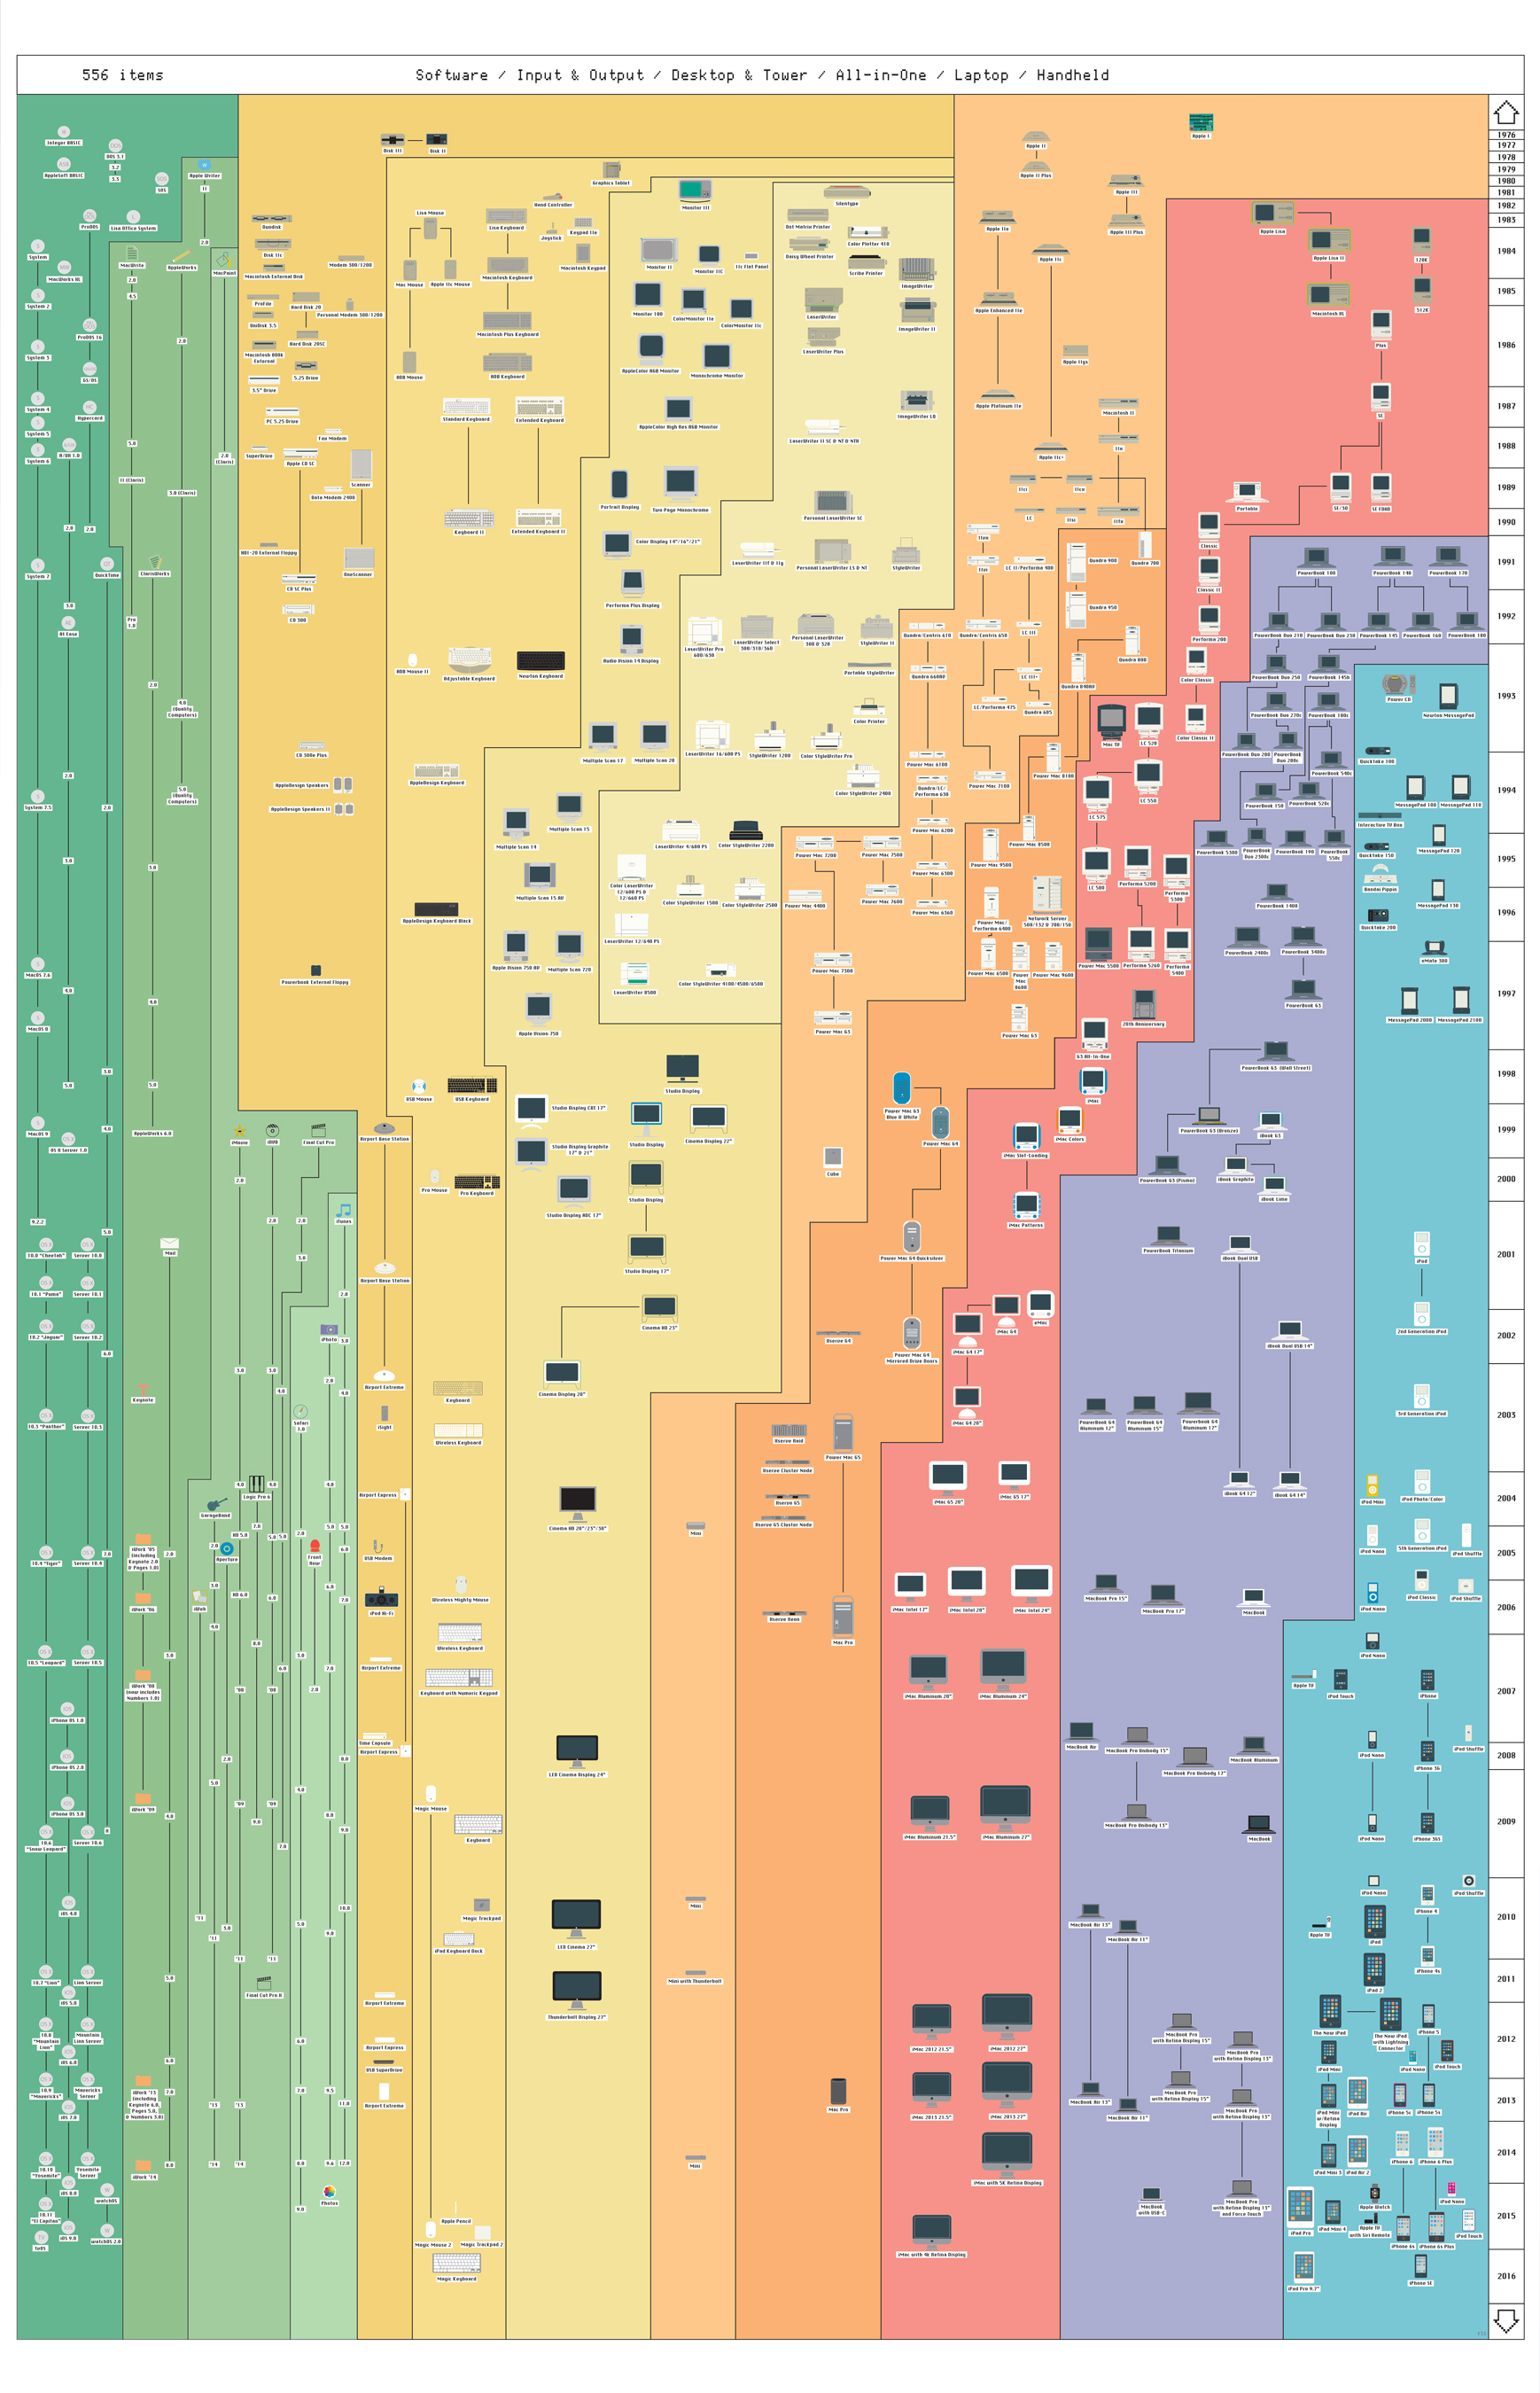 40 years of Apple products infographic by Wired